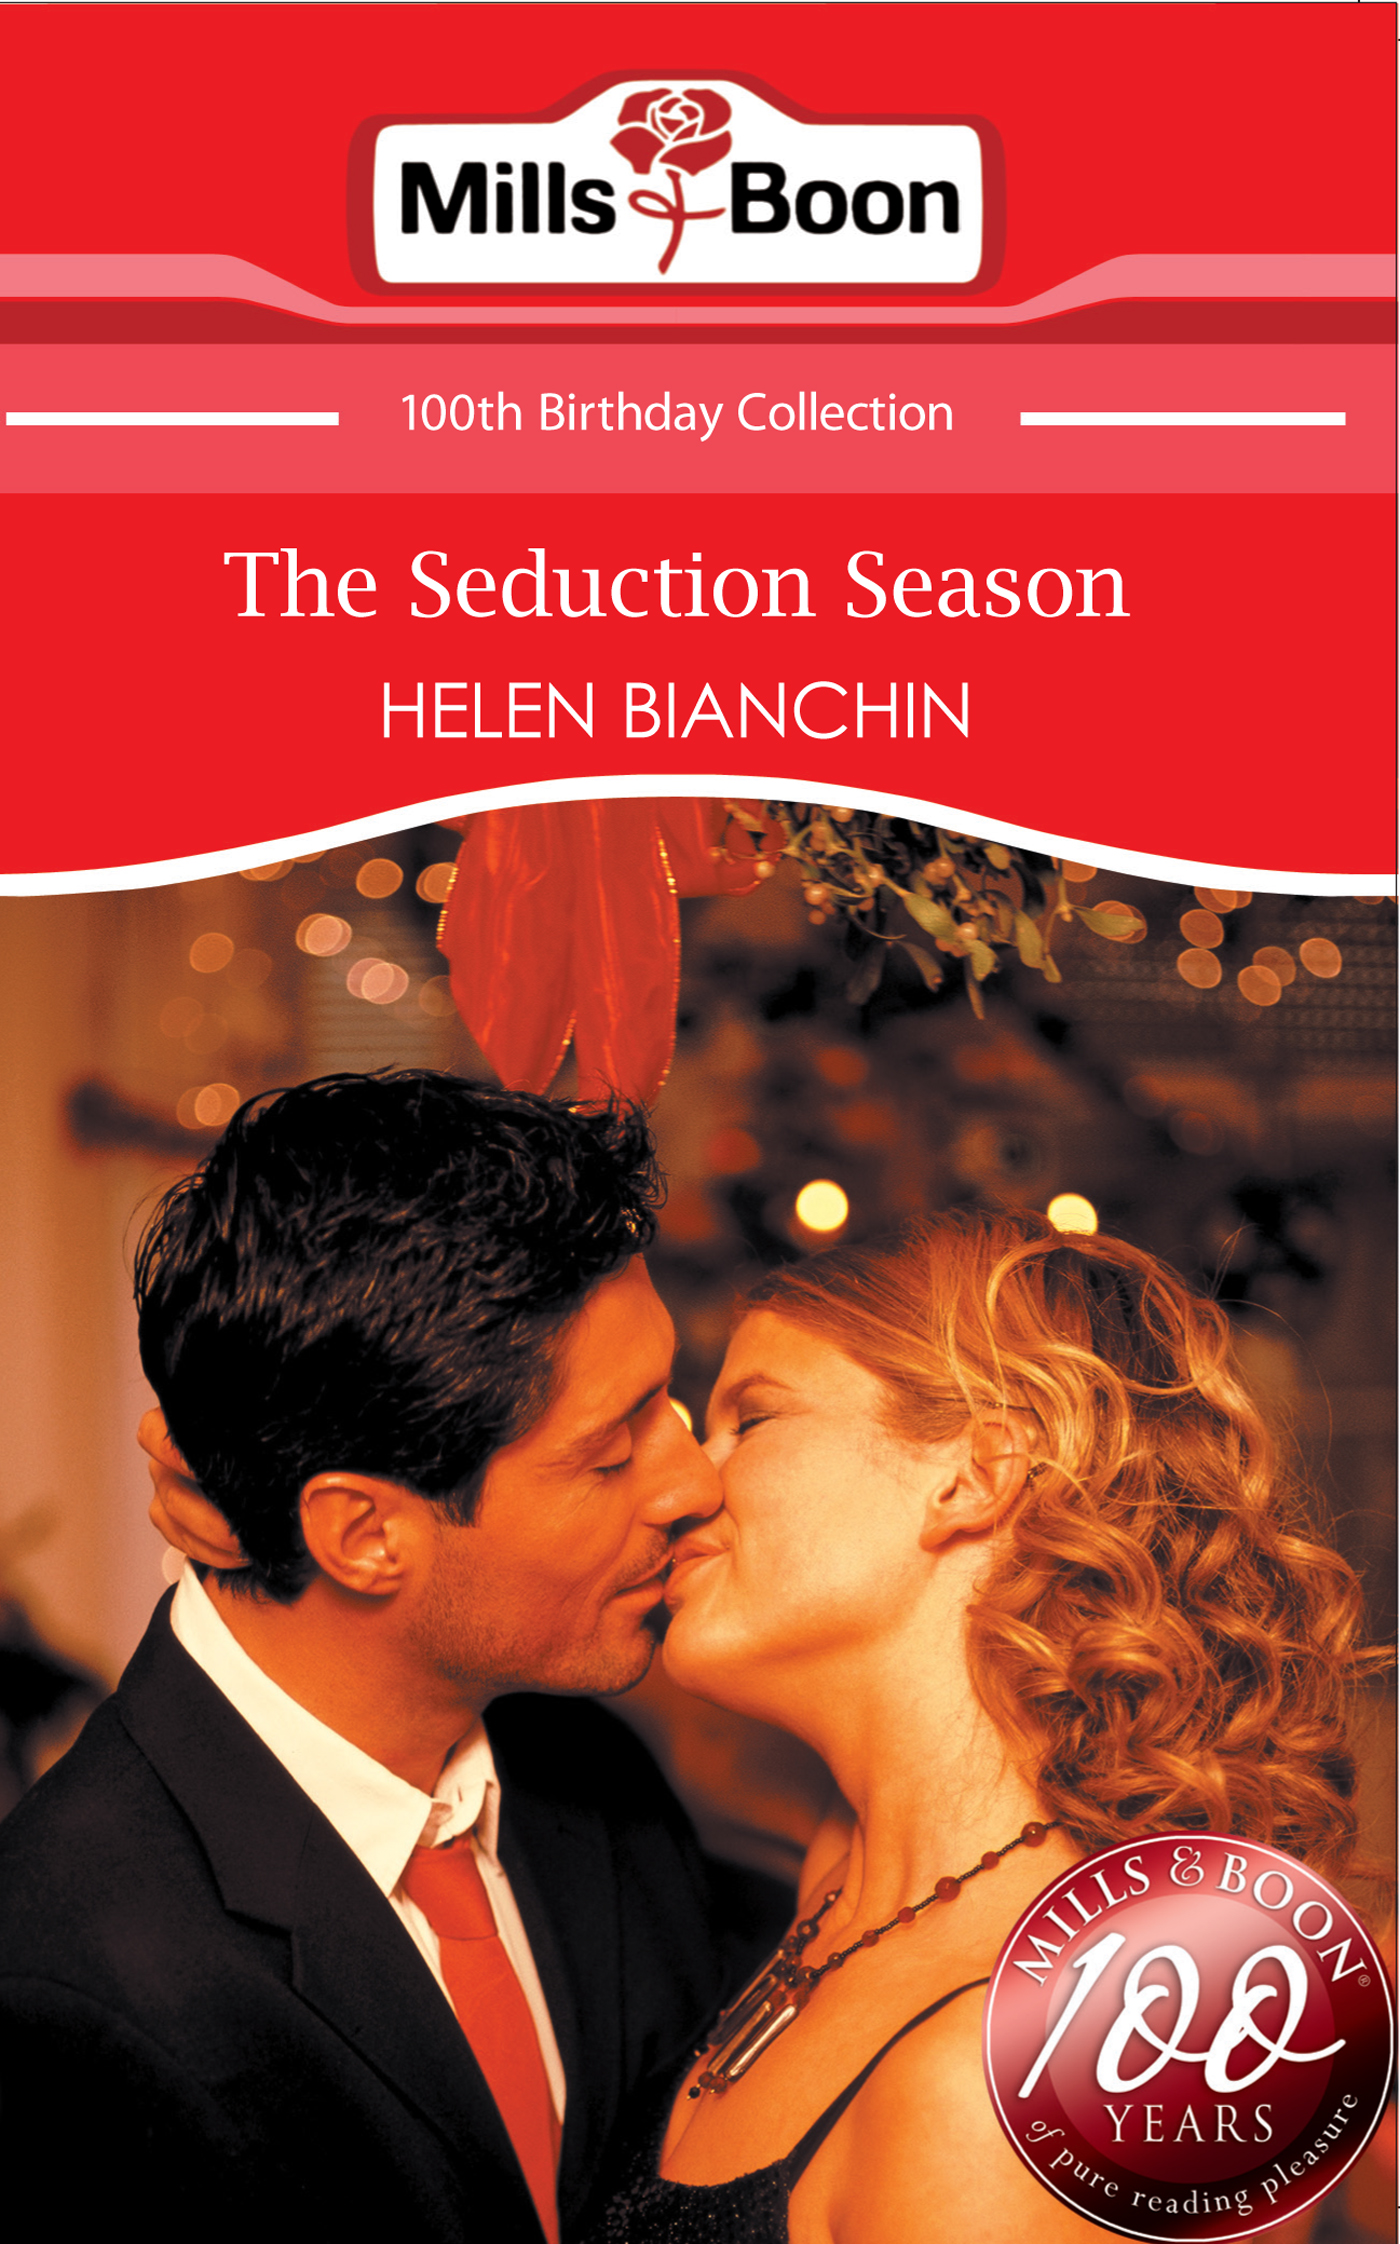 The Seduction Season (Mills & Boon Short Stories)